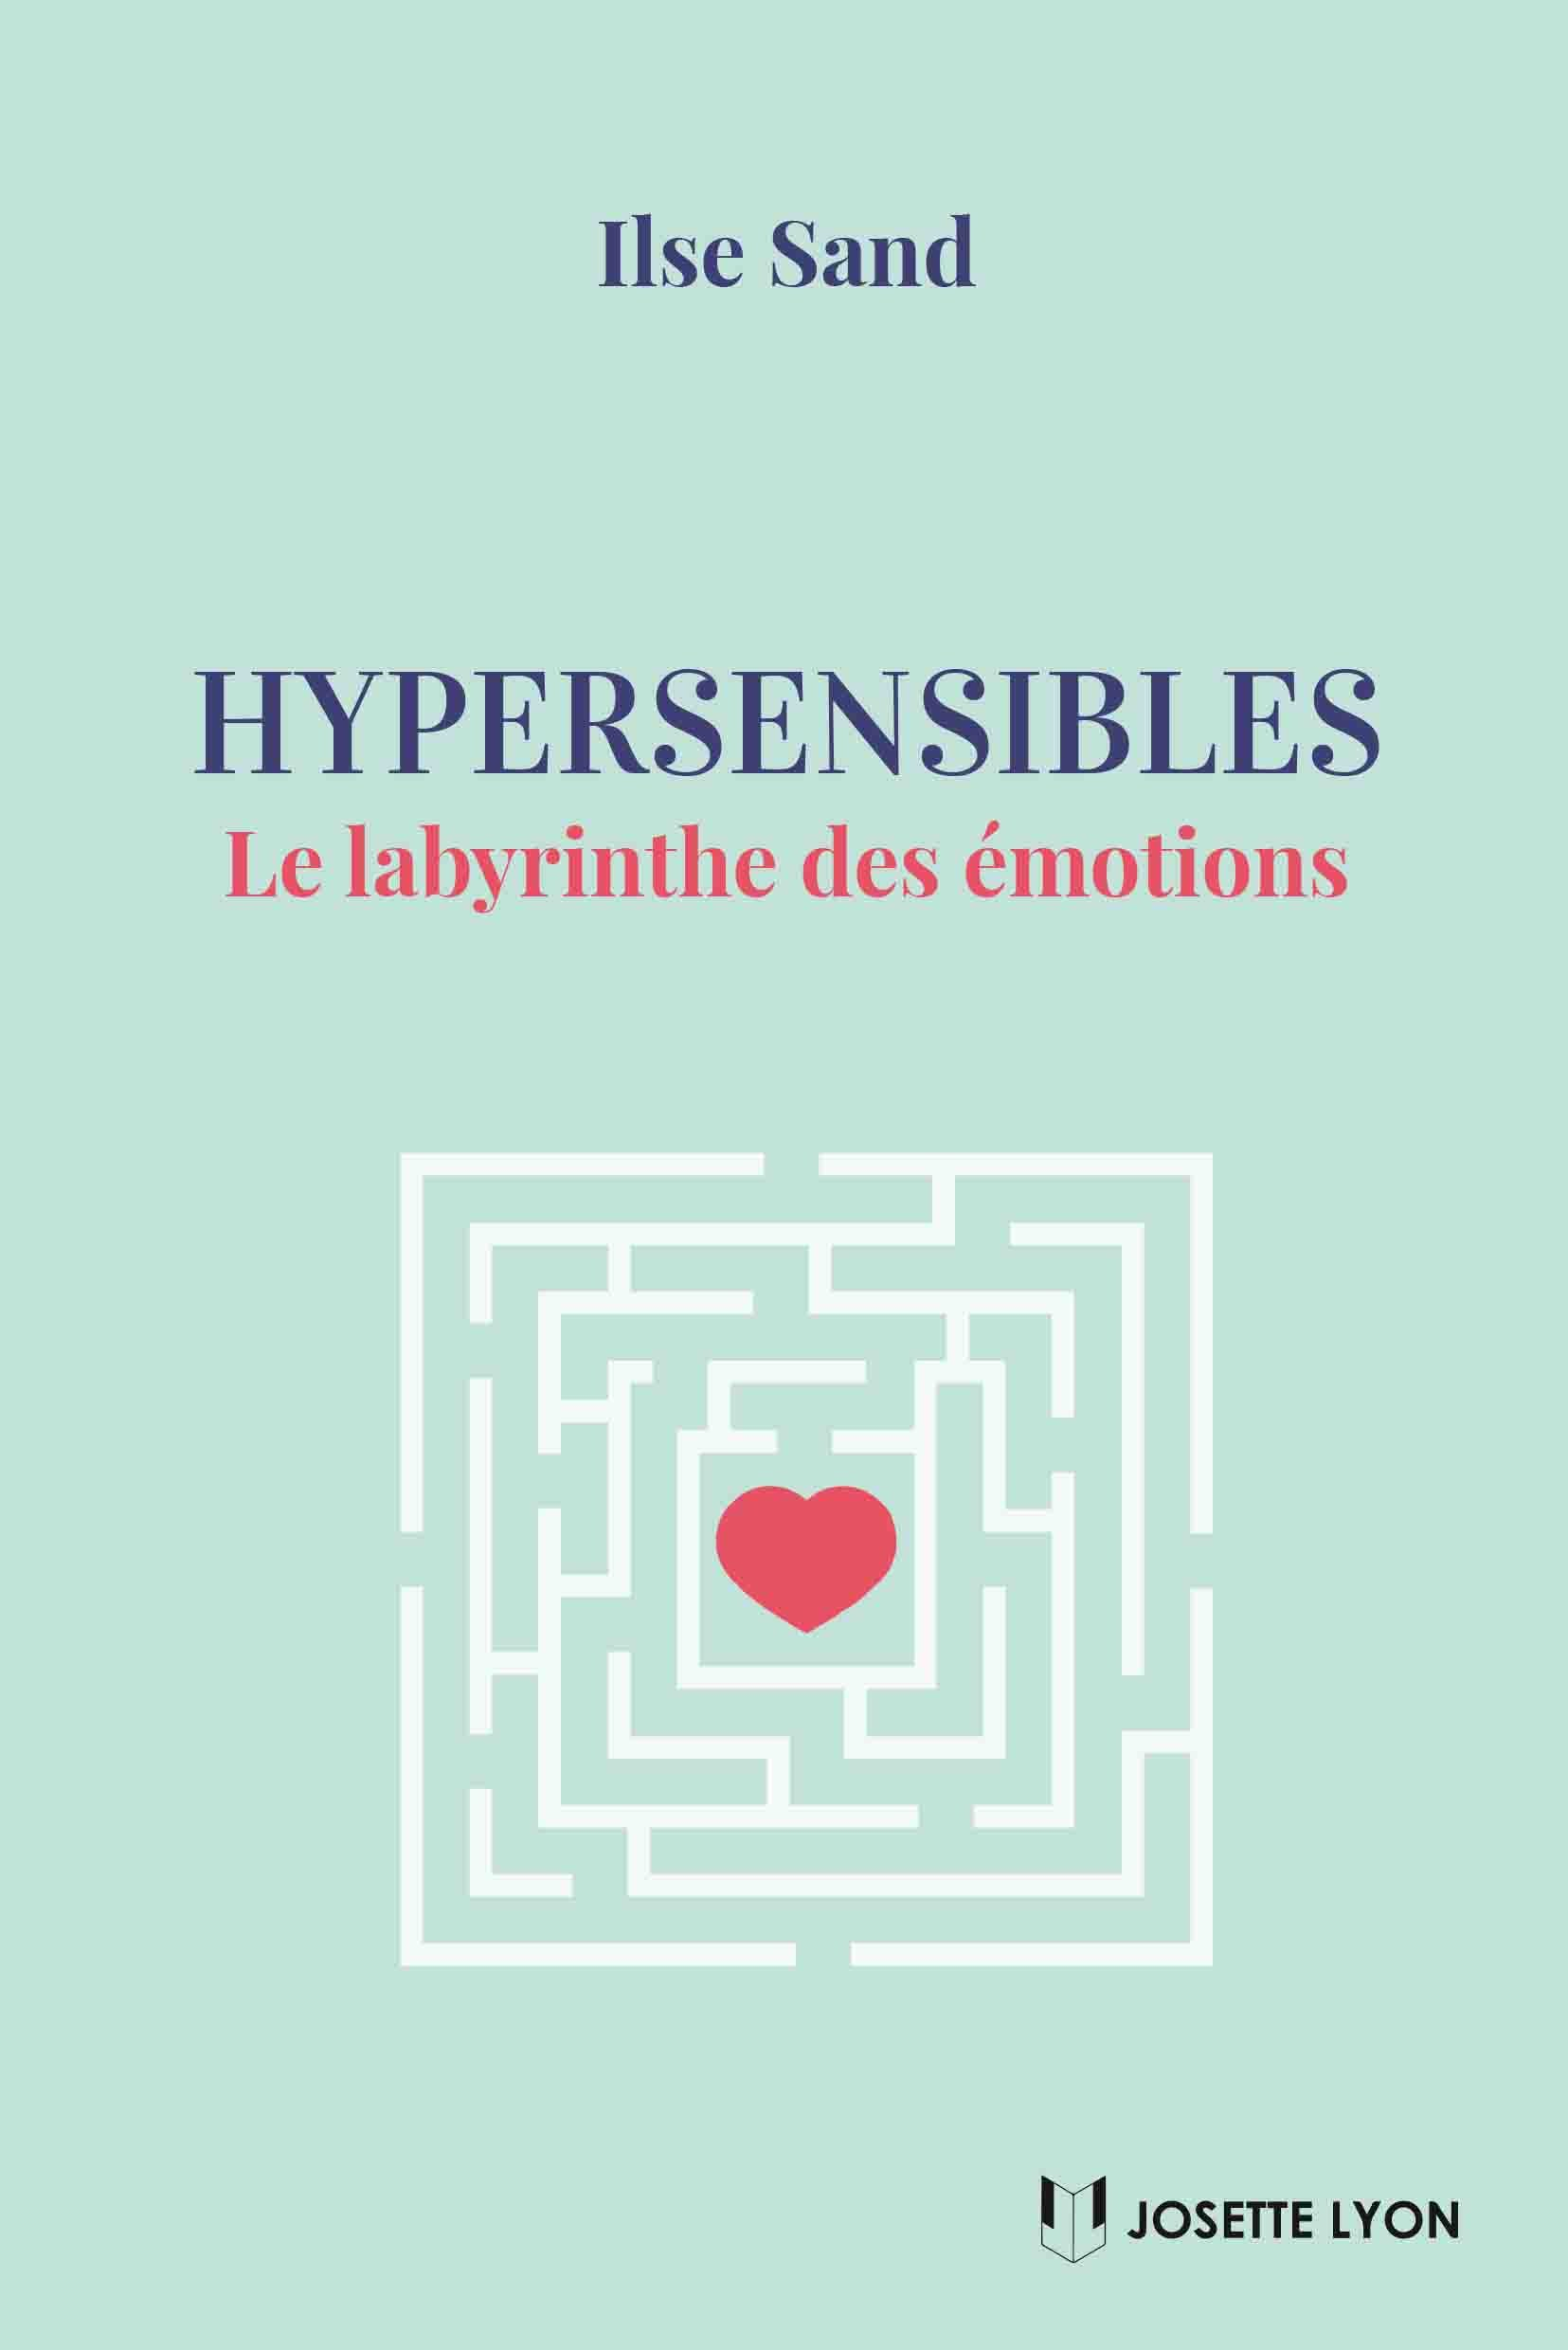 Hypersensibles, le labyrinthe des émotions